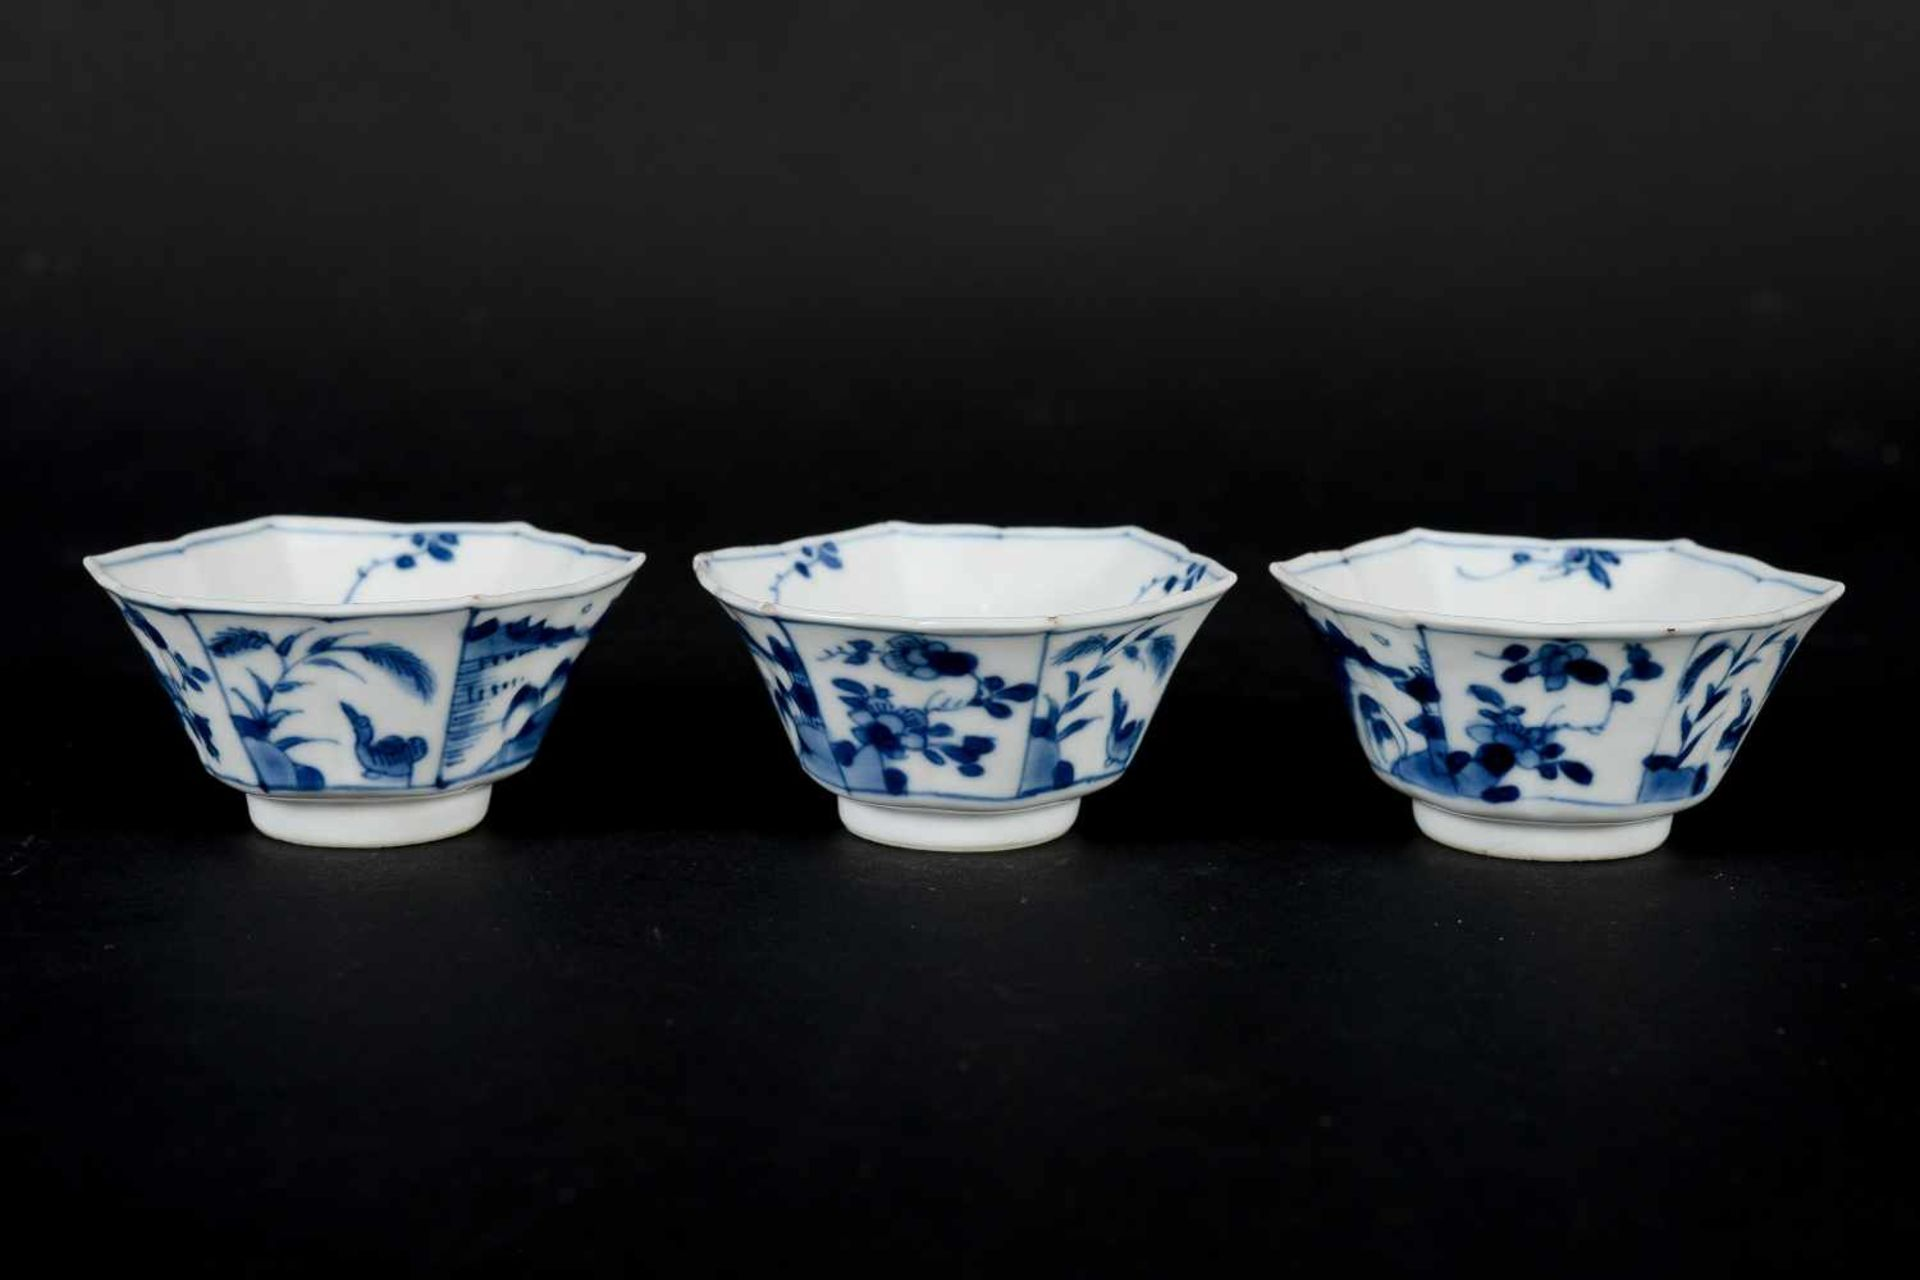 A set of three hexagonal blue and white porcelain cups with saucers, decorated with ducks, flowers - Bild 9 aus 12